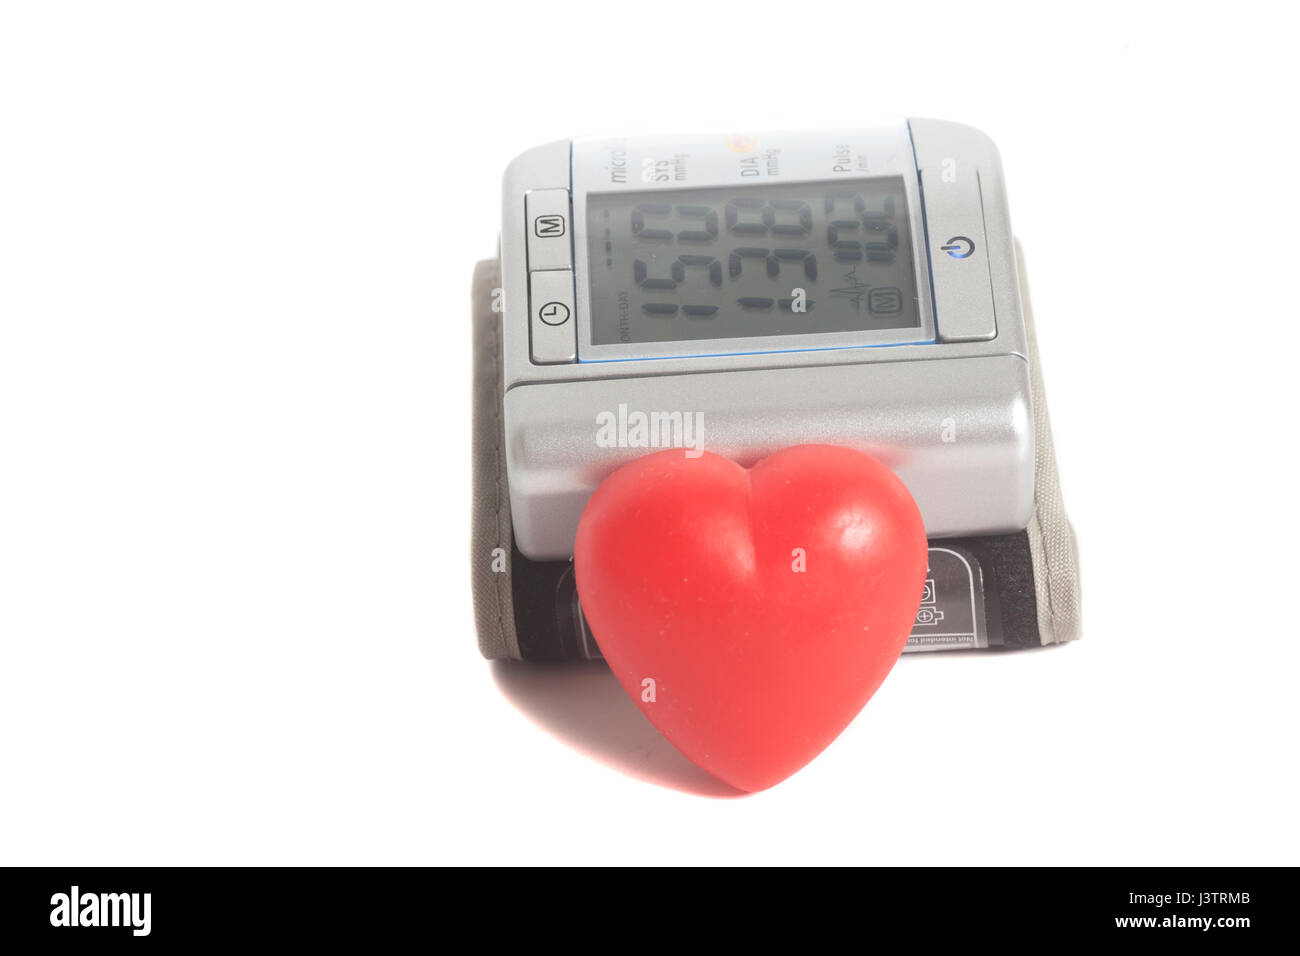 Digital blood pressure meter with  heart symbol isolated on white background - Stock Image